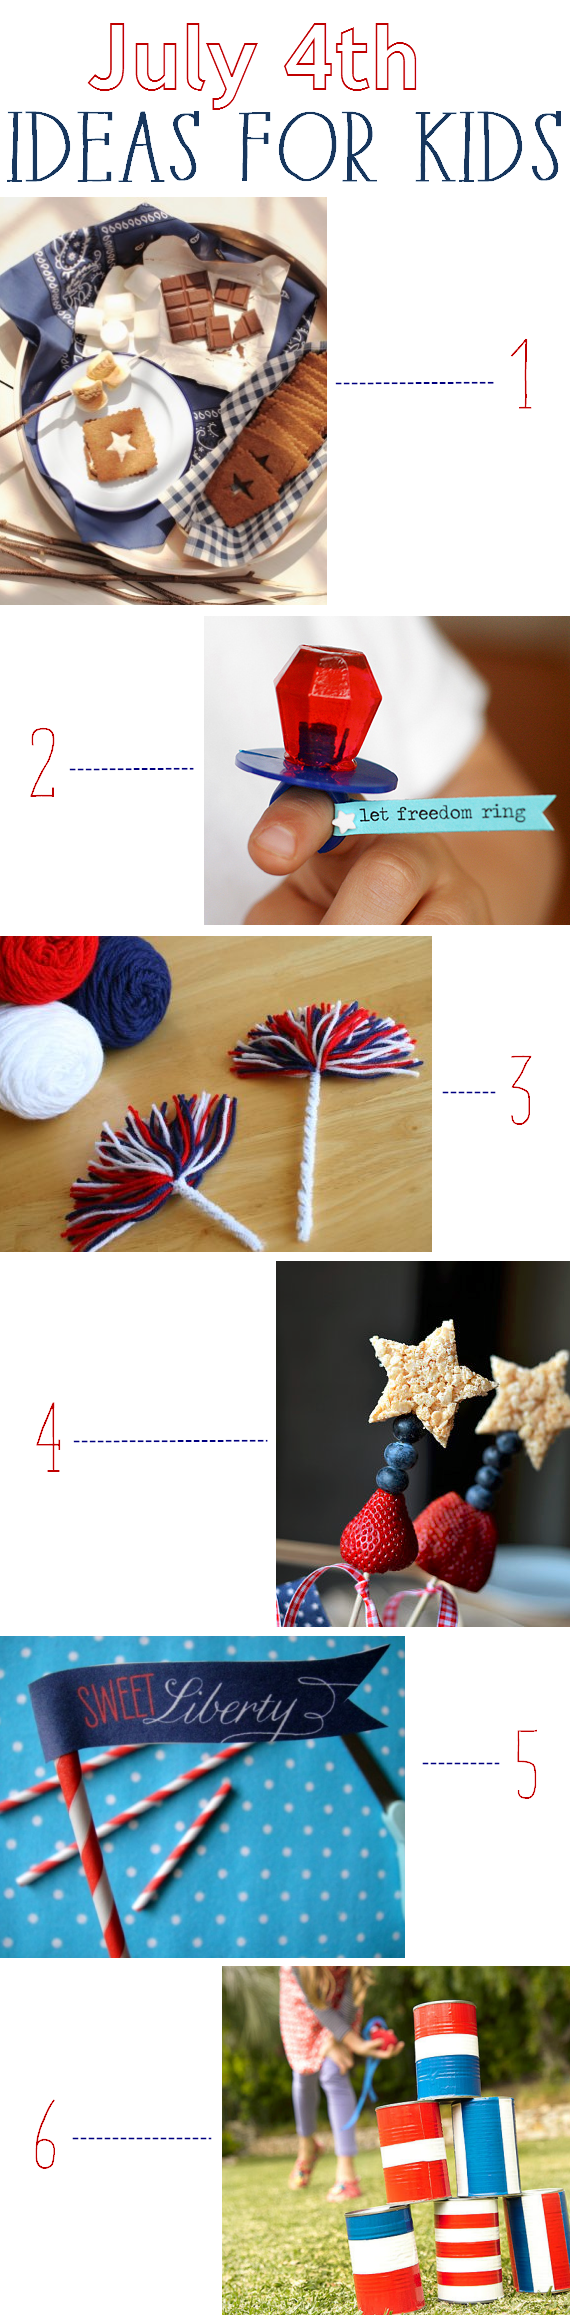 July 4th ideas for kids - simplifiedbee.com